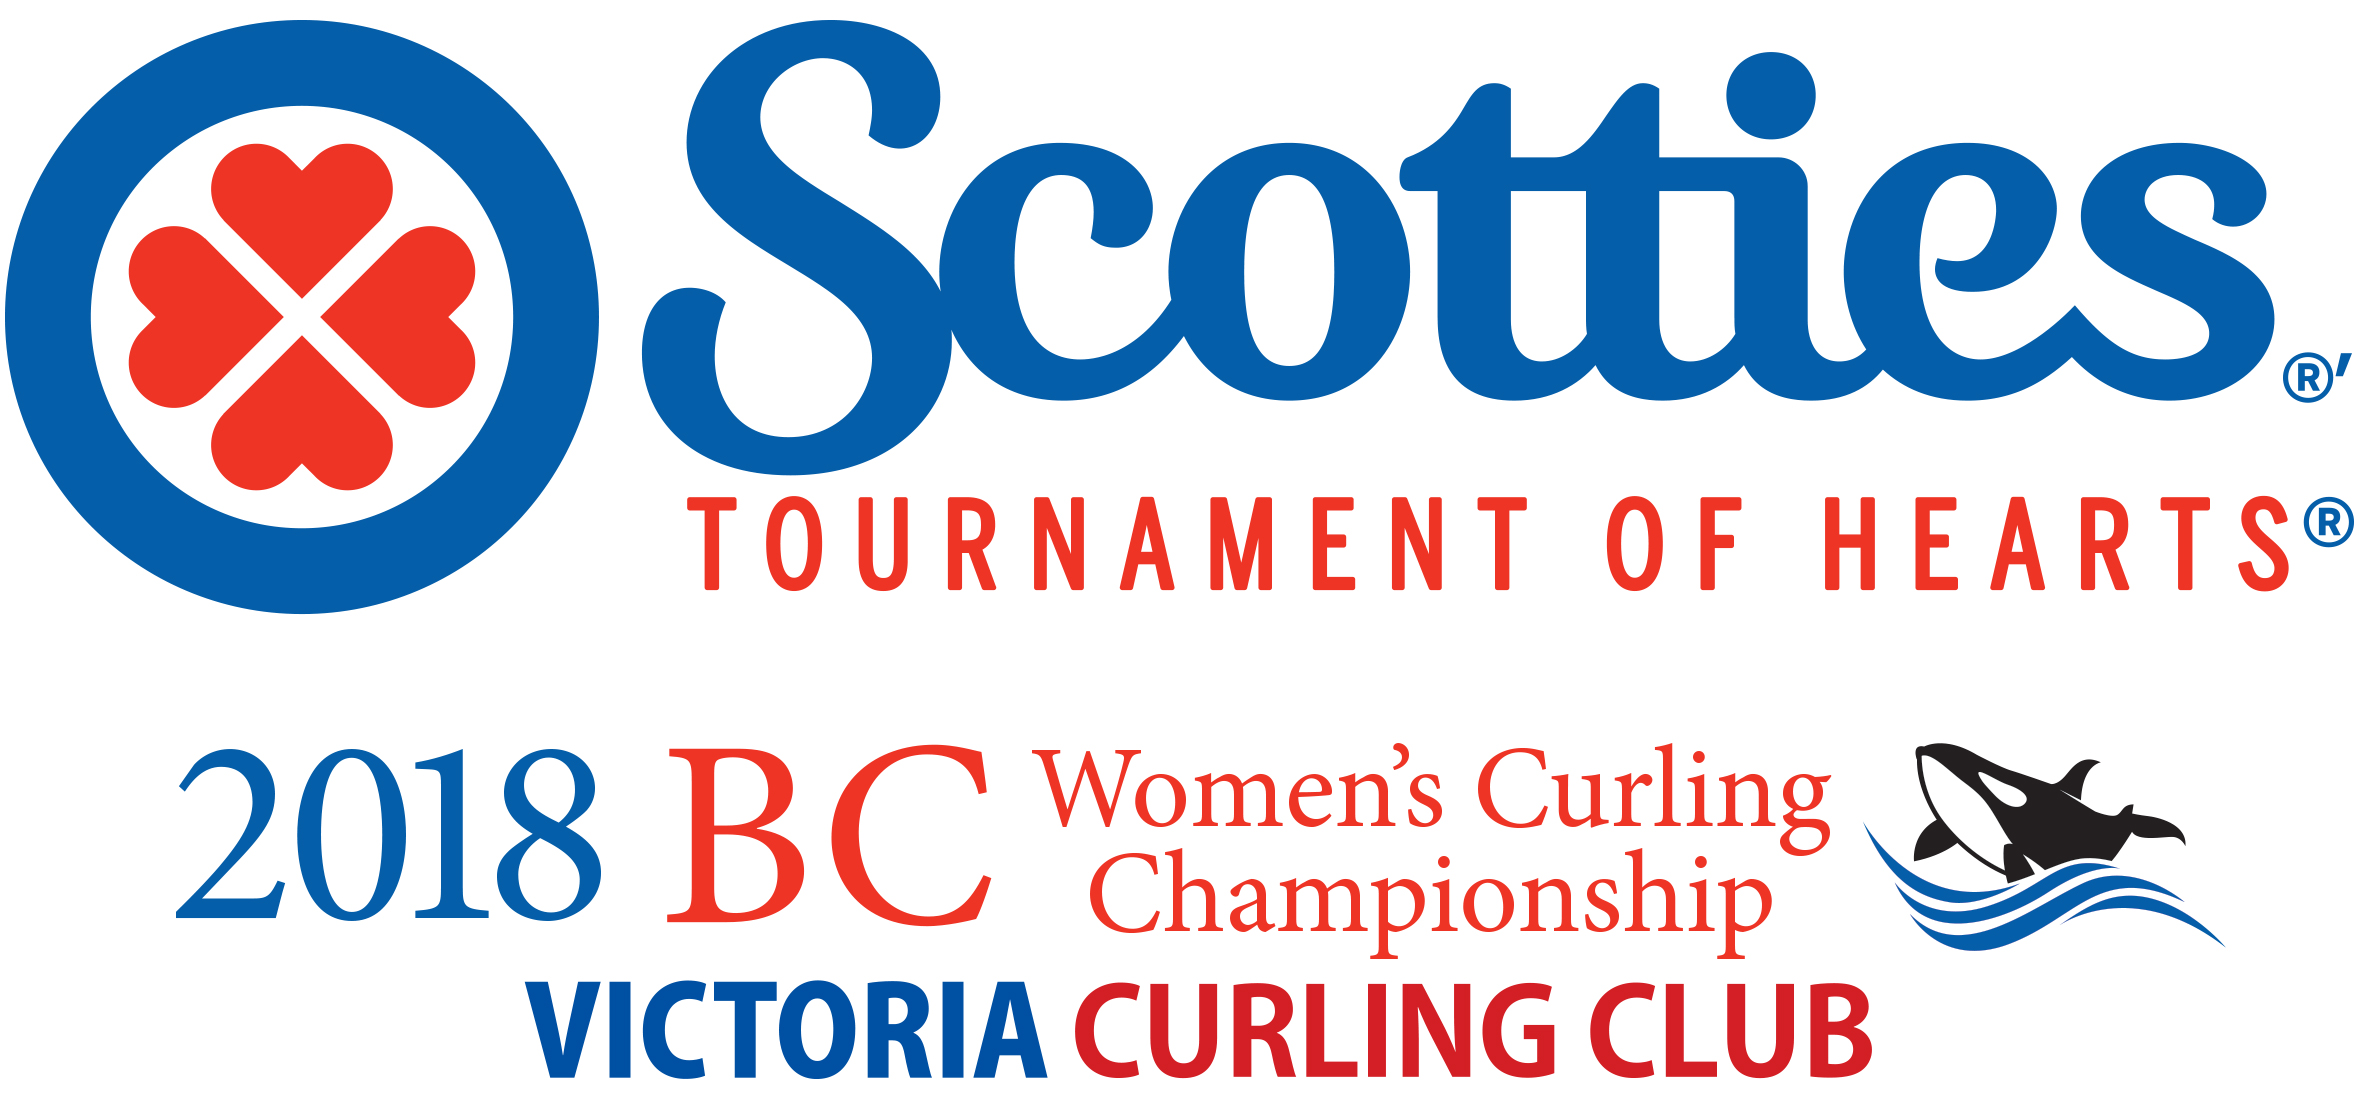 VCC-Scotties Logo